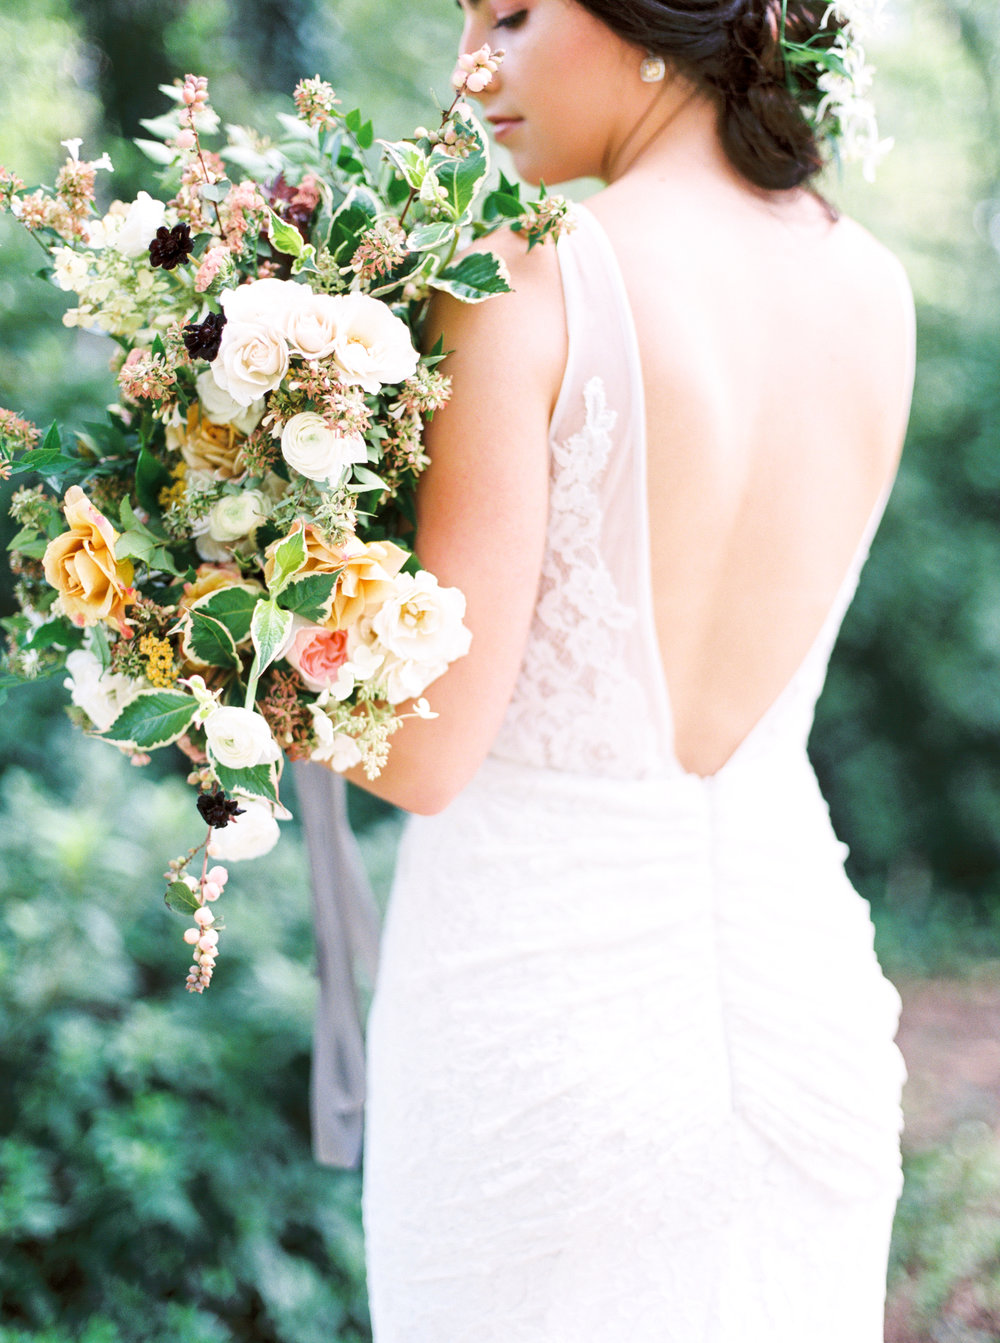 Callie Manion Photography_Garden Wedding Inspiration_051.jpg